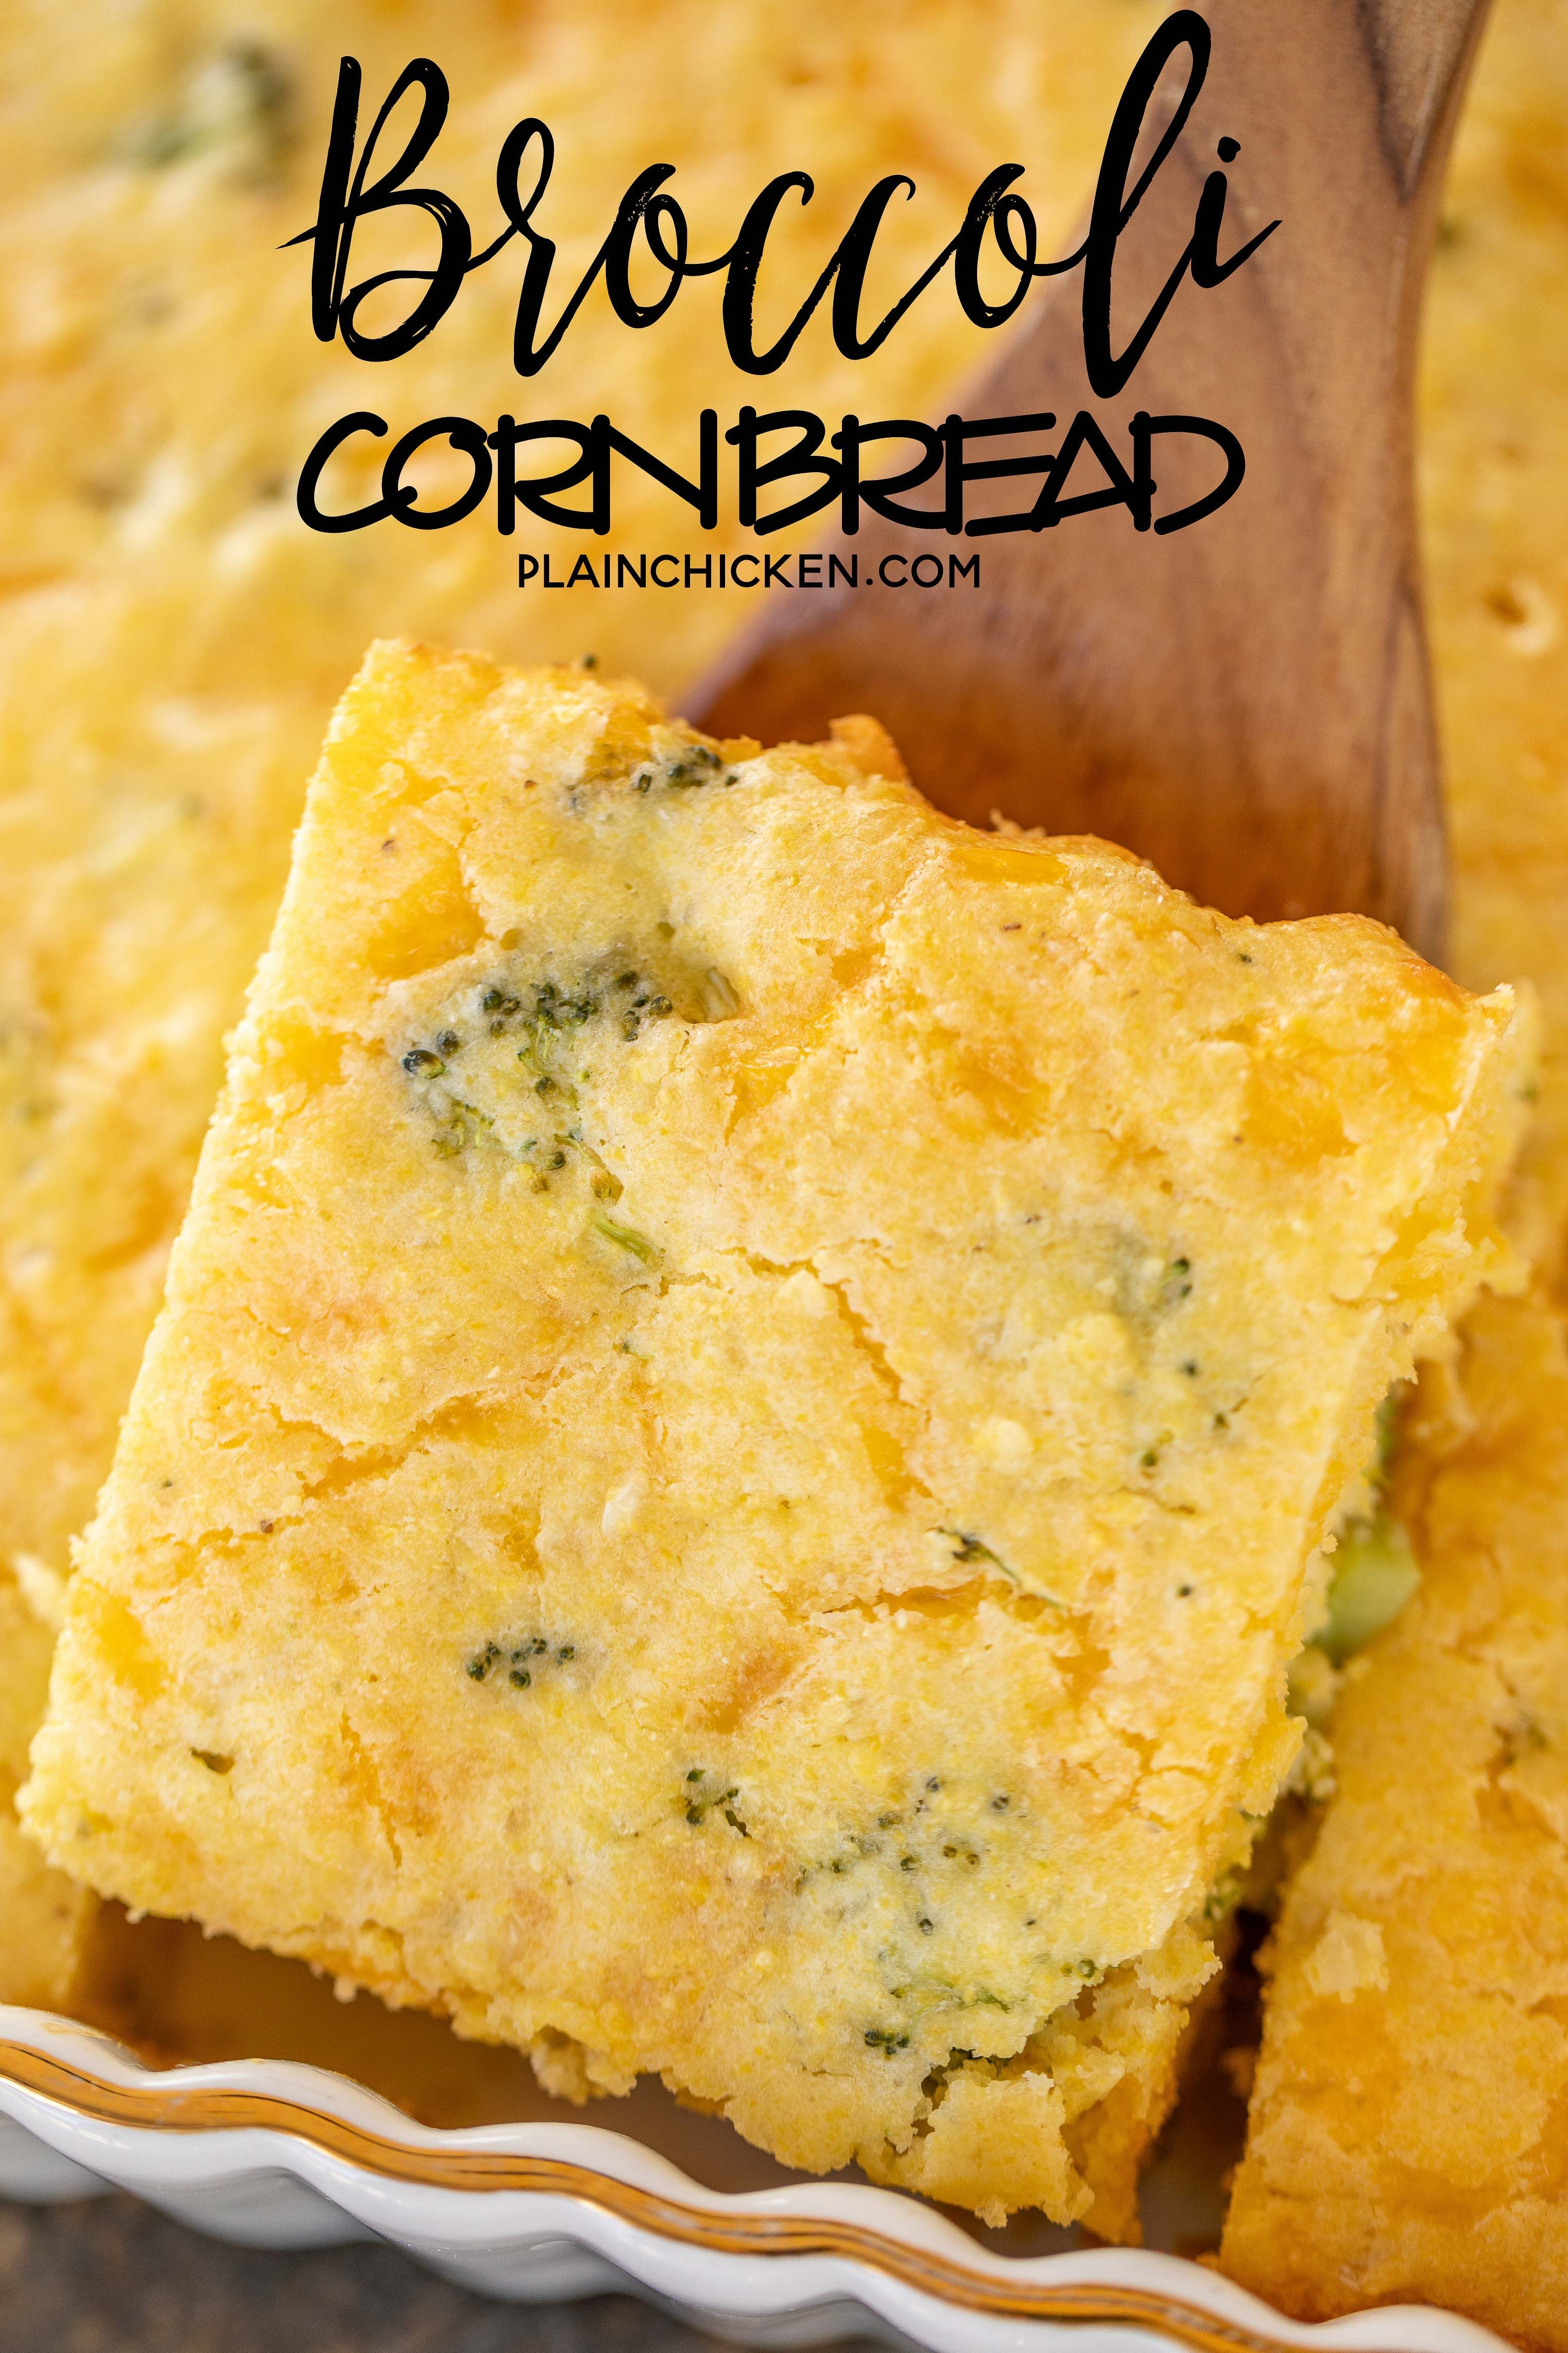 Broccoli Cornbread Seriously Delicious So Simple And Tastes Great Perfect For All Your Summer Cookouts And Pot Broccoli Cornbread Cornbread Sweet Cornbread